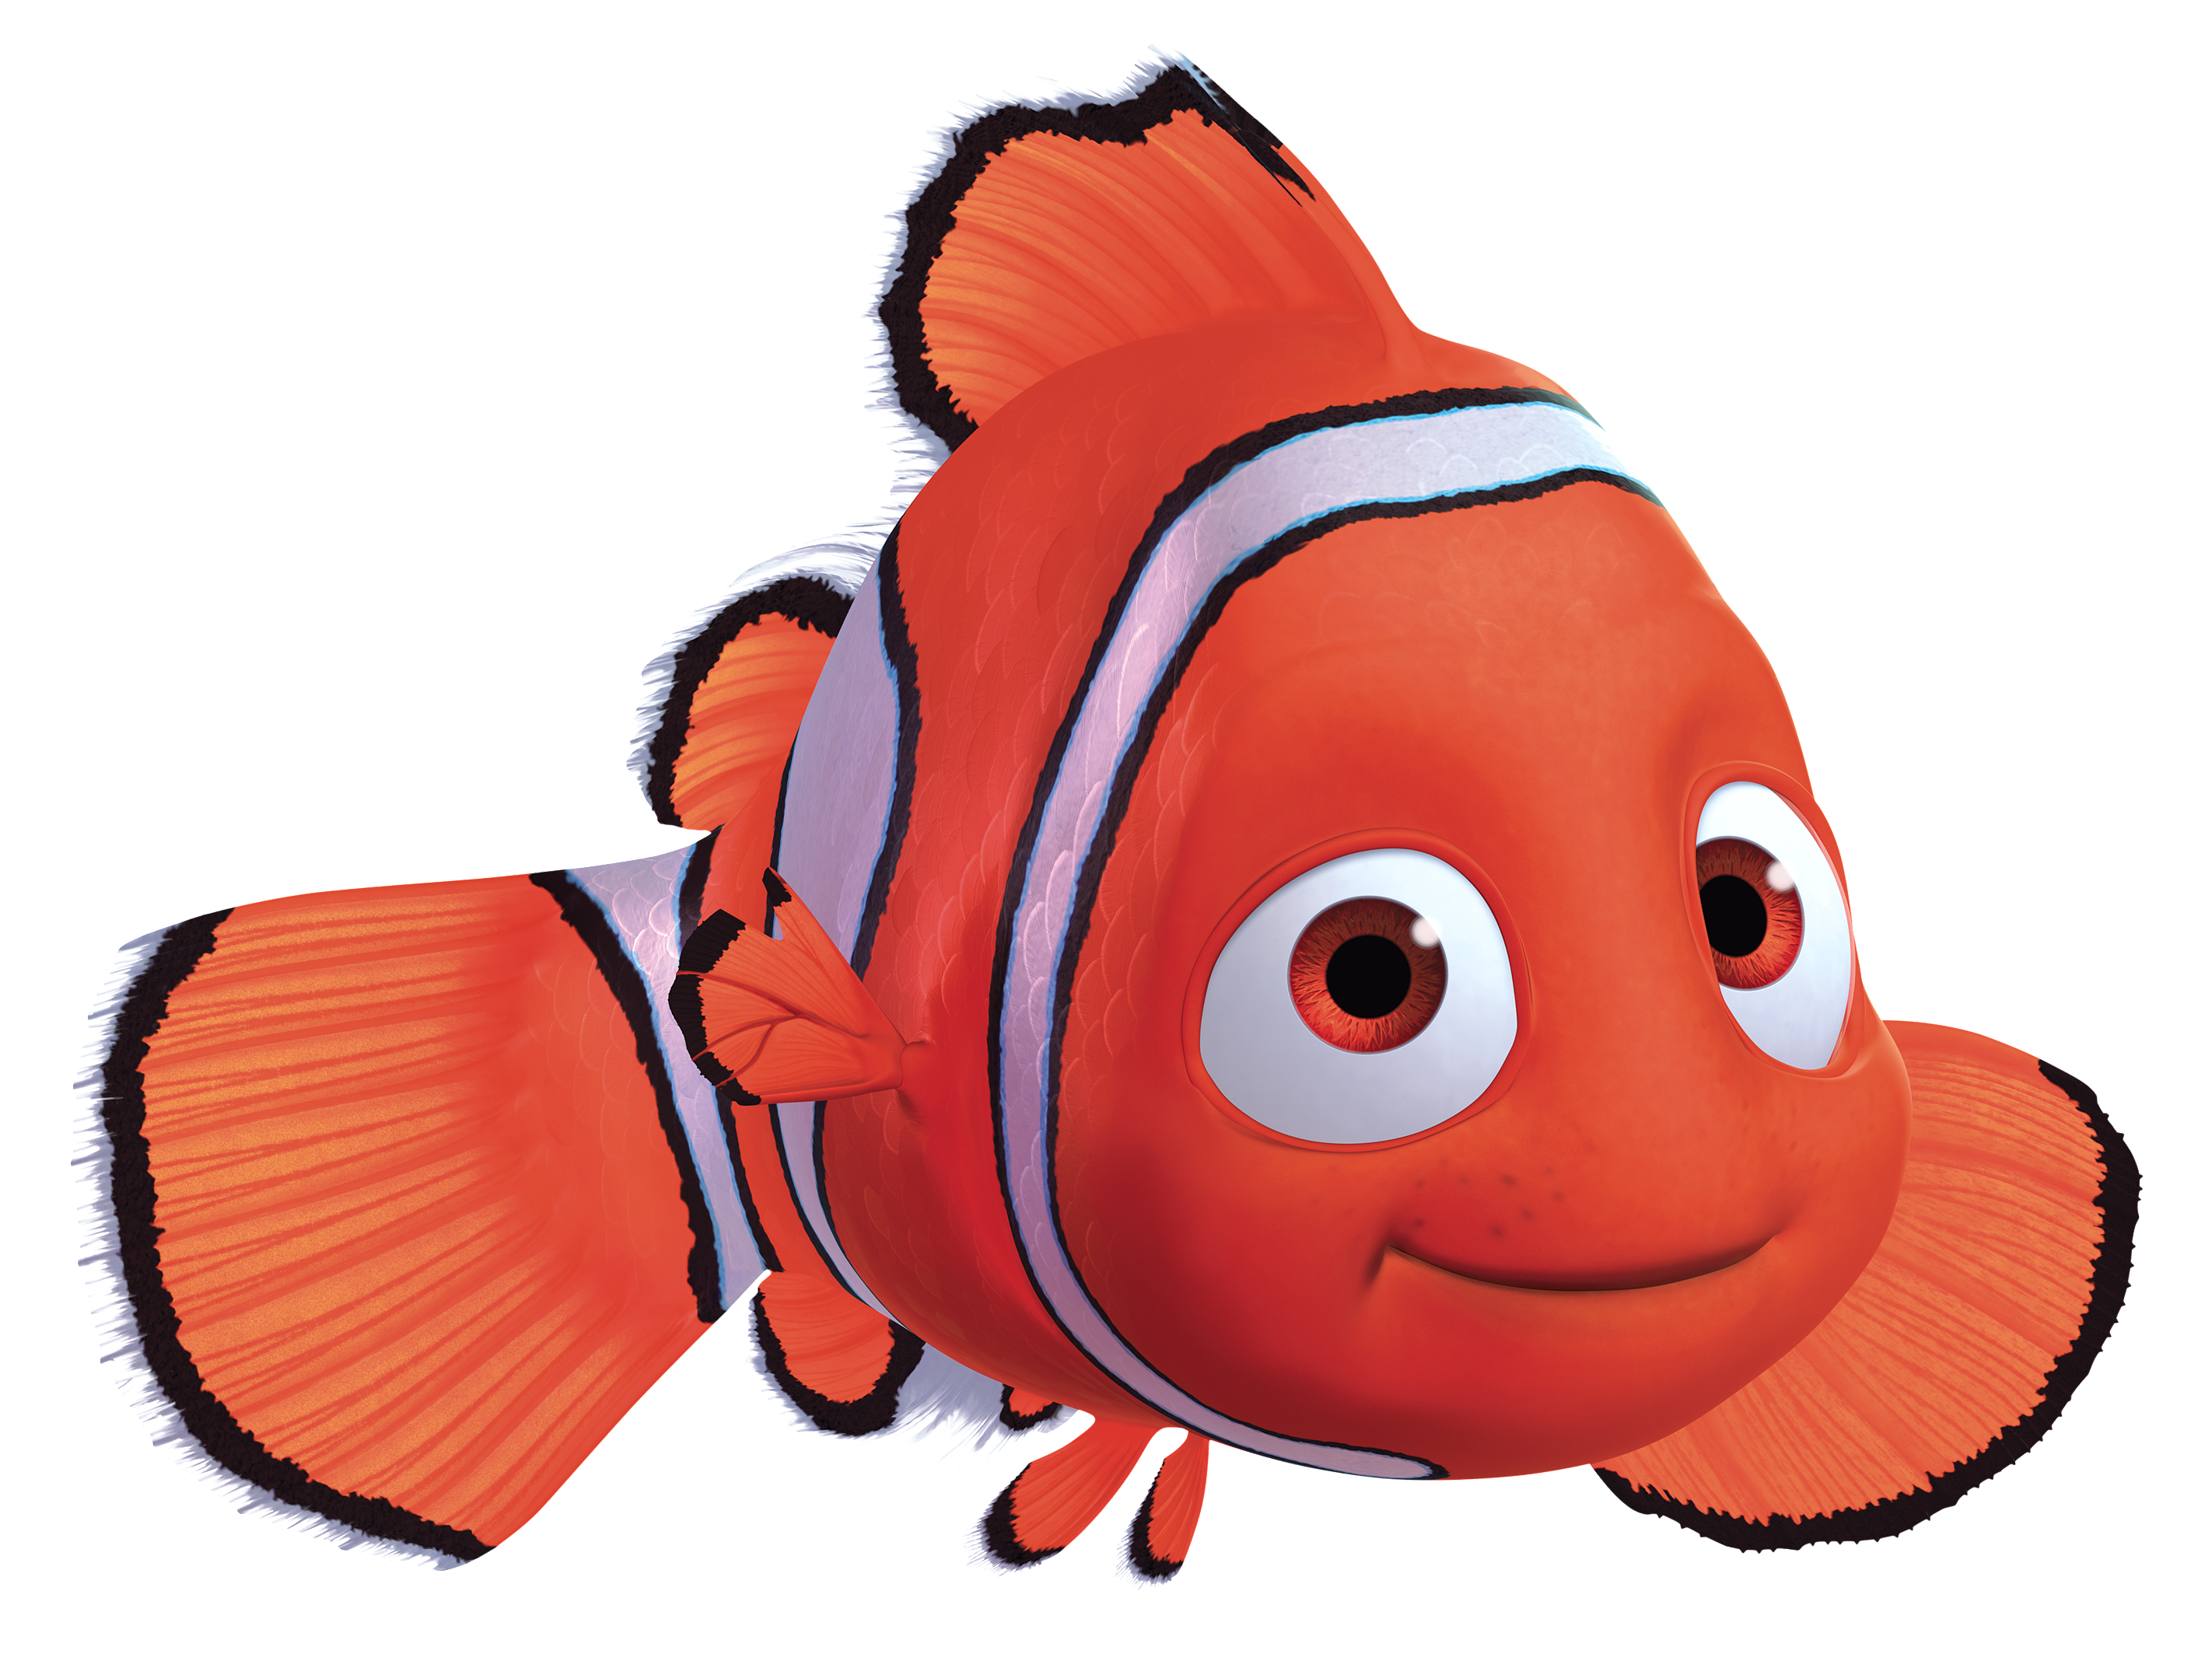 Finding dory seasweed and coral png. Image nemo fn pixar